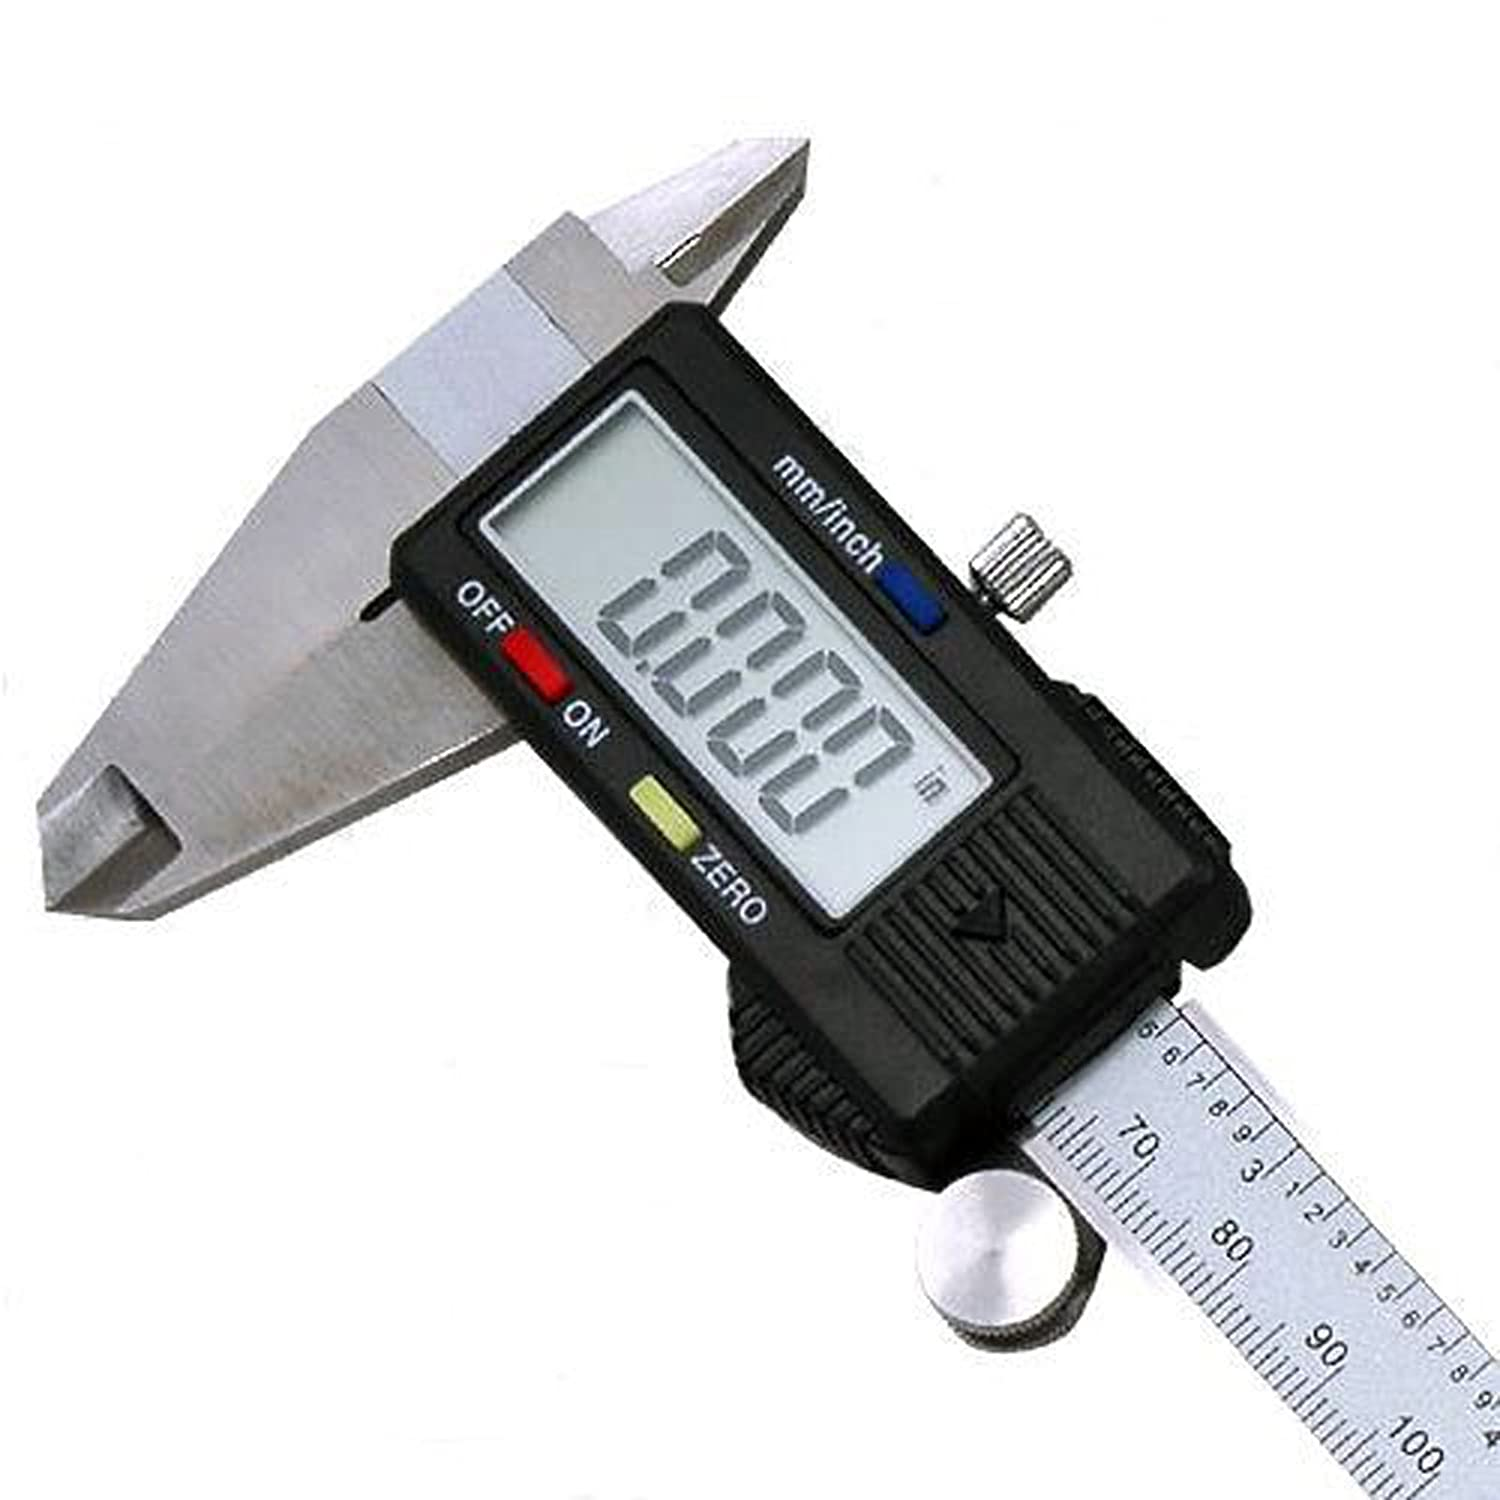 Lupo lcd digital electronic caliper vernier gauge micrometer tool amazon co uk business industry science